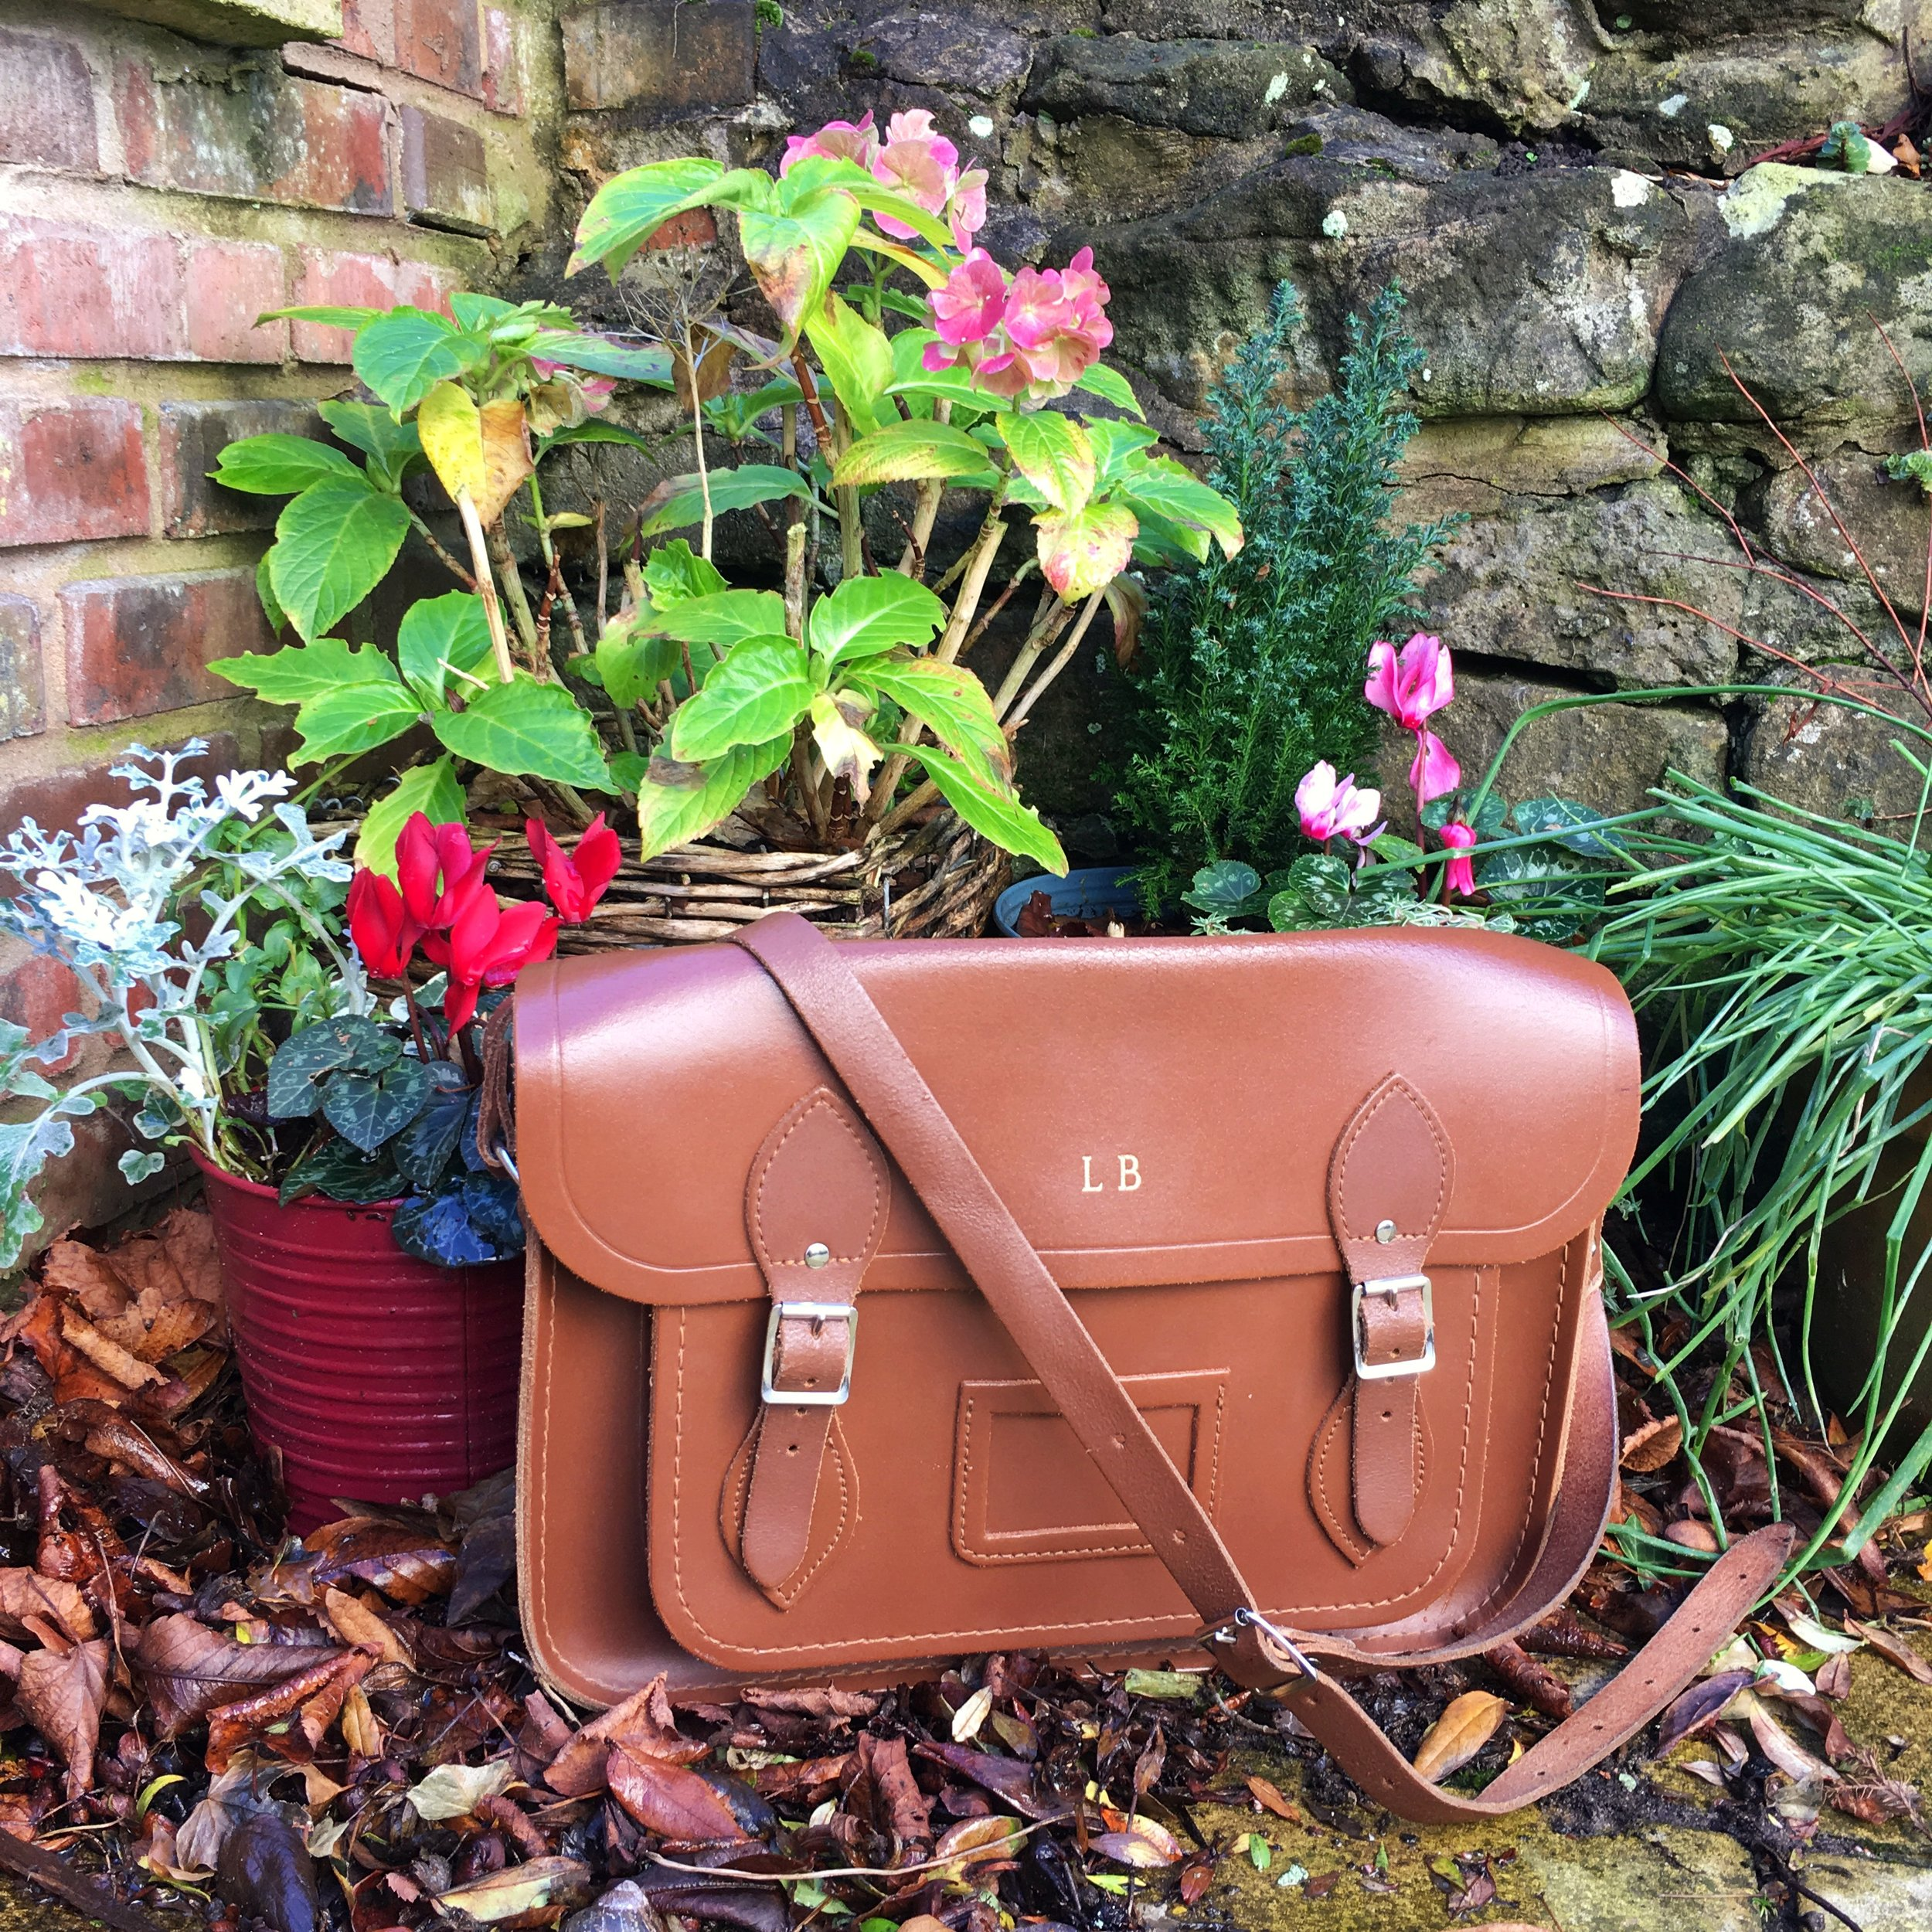 Cambridge satchel amidst autumn flowers and leaves. Pinafores and Peonies